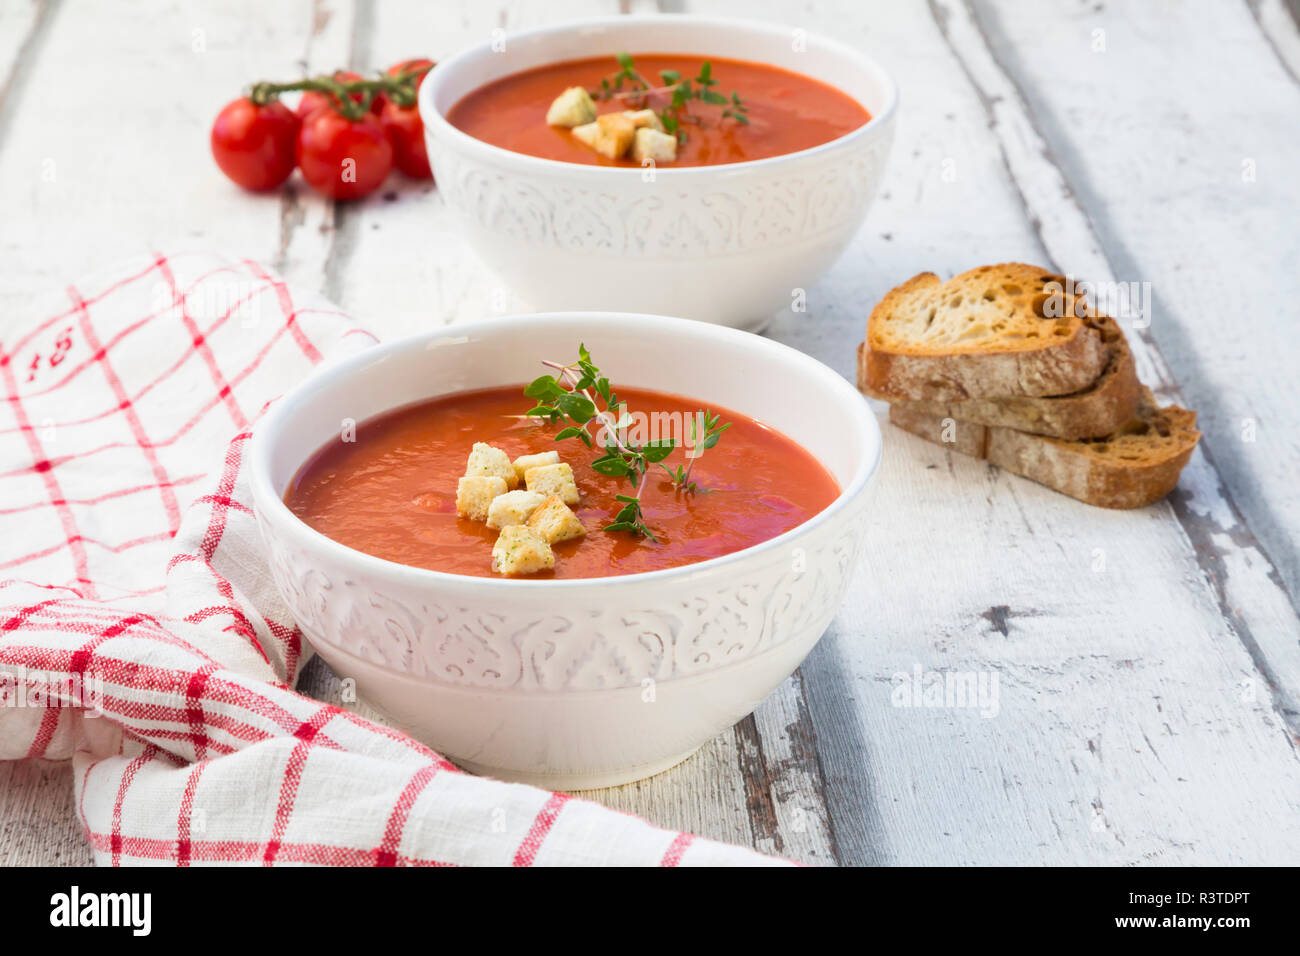 Mediterran tomato soup with roasted bread, croutons and thyme - Stock Image